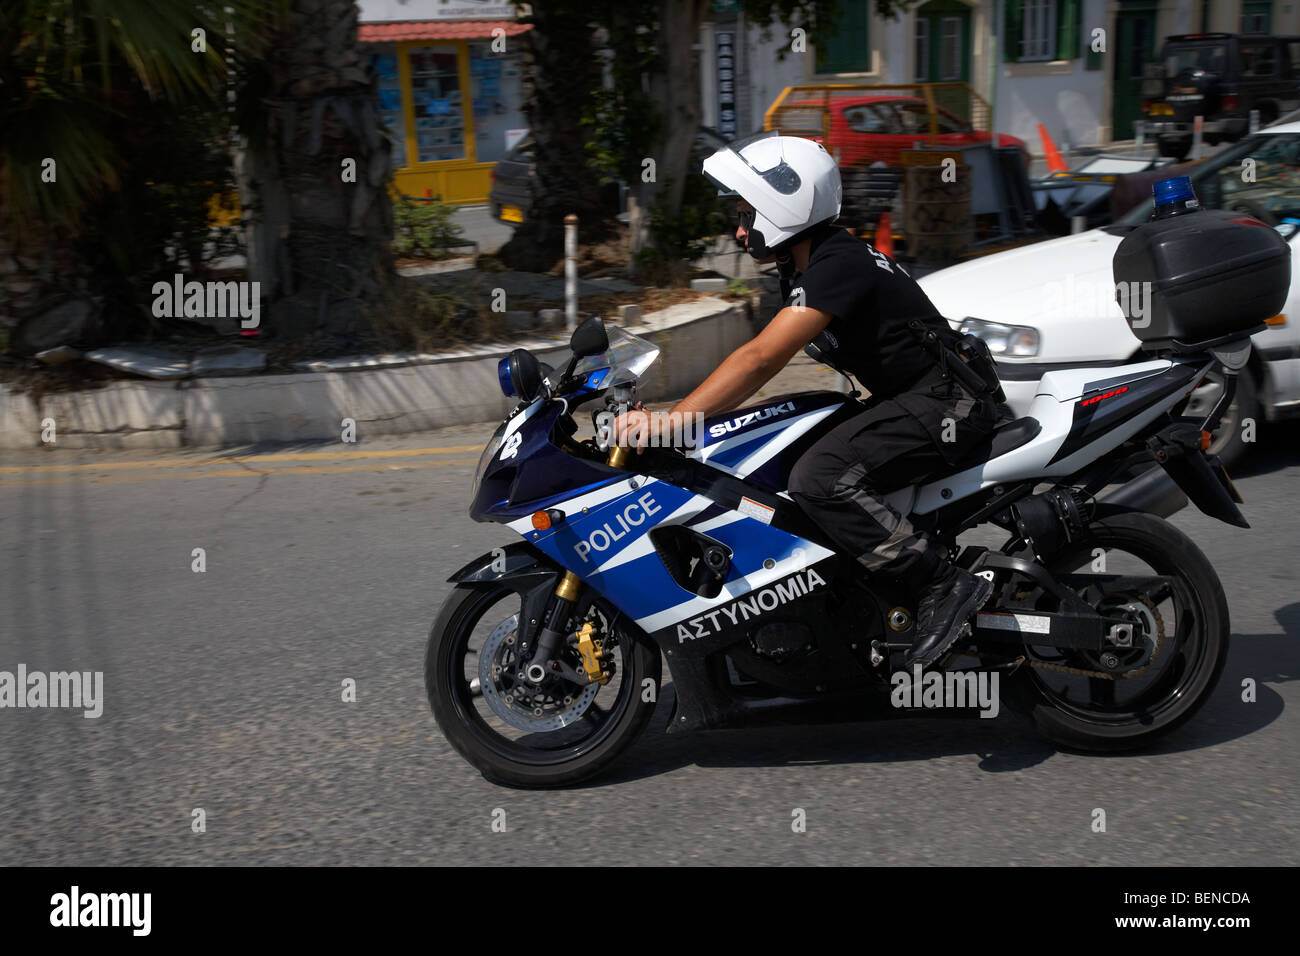 police officer on suzuki 1000 fast police motorcycle republic of cyprus police force Stock Photo